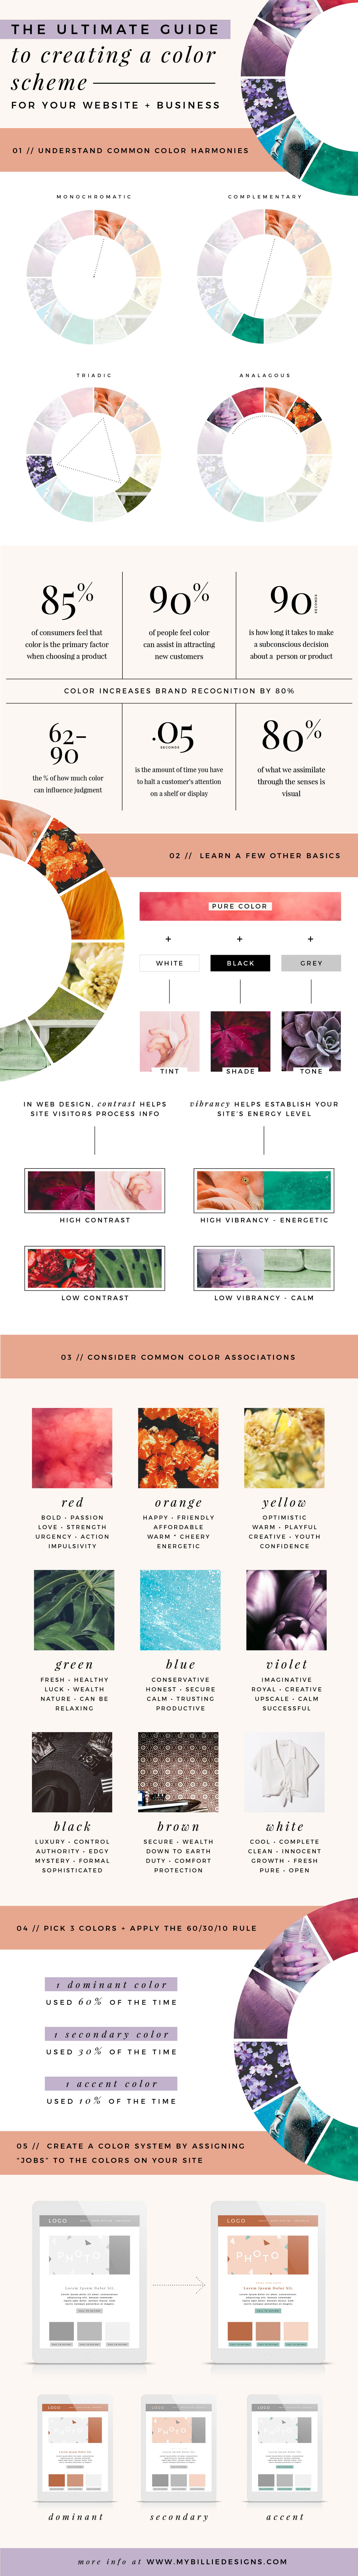 The Ultimate Guide To Creating A Color System For Your Website And Business My Billie Designs